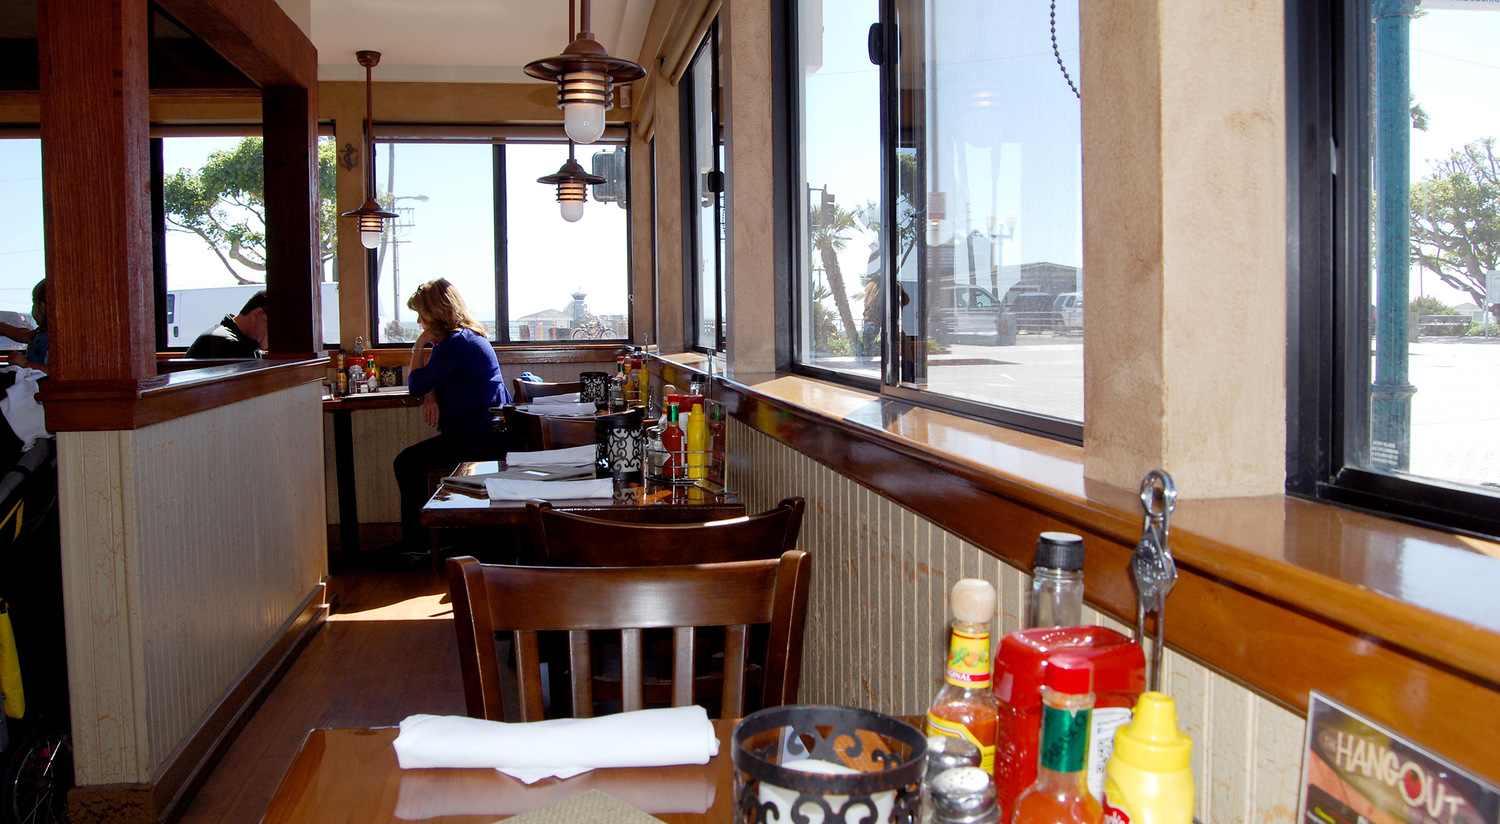 Lunch Restaurant In Seal Beach CA